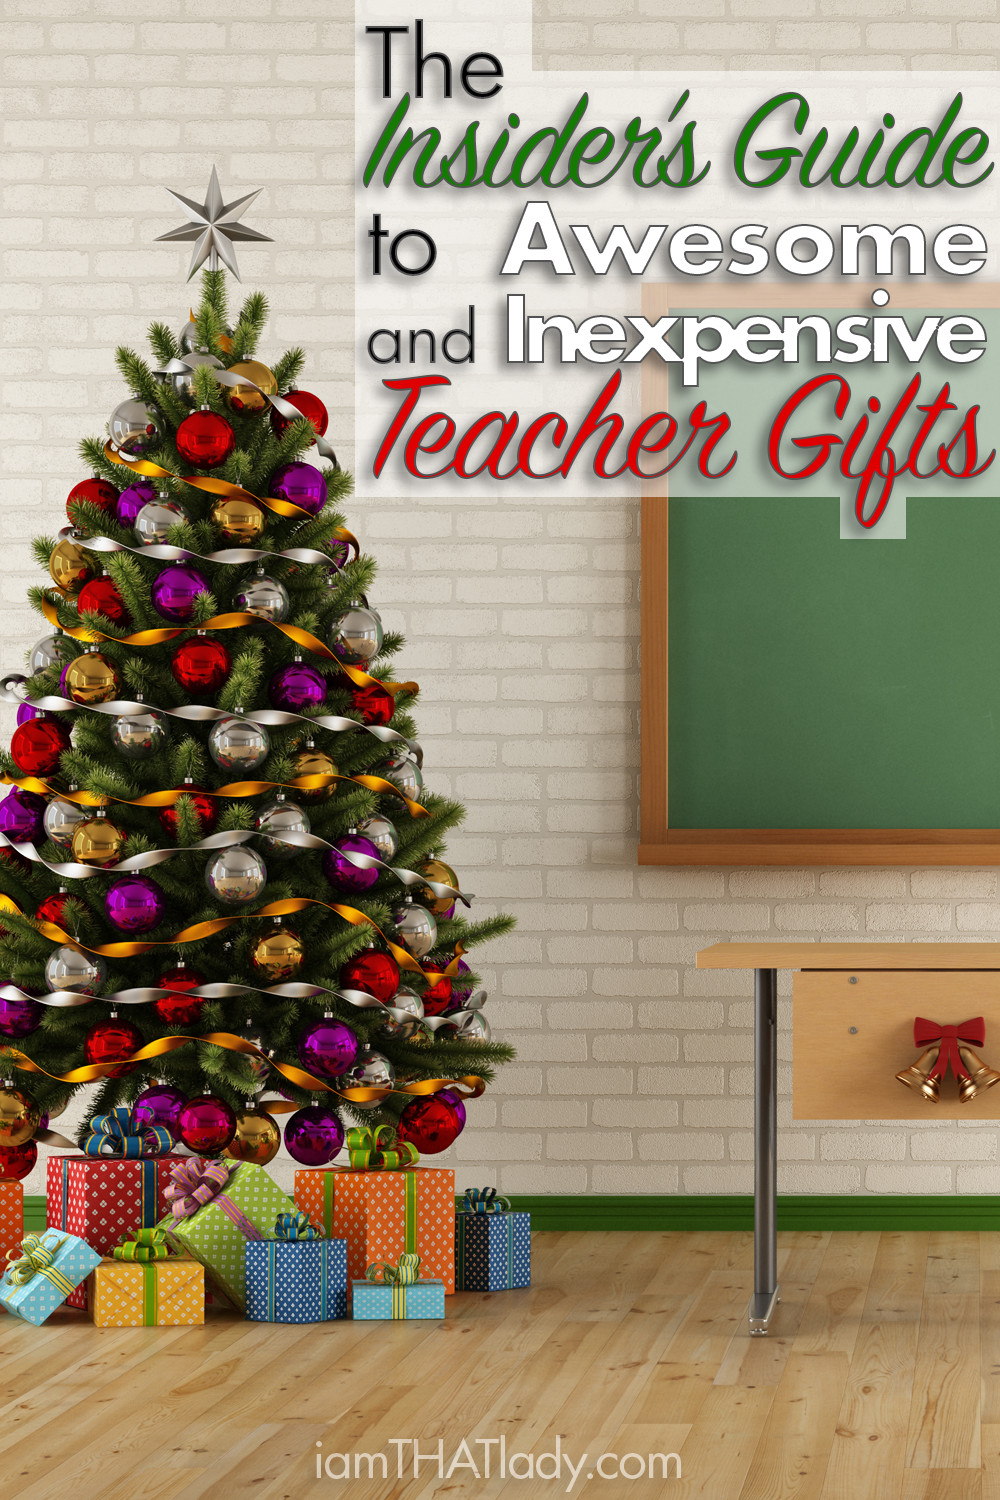 The Insiders Guide to Awesome and Inexpensive Teacher